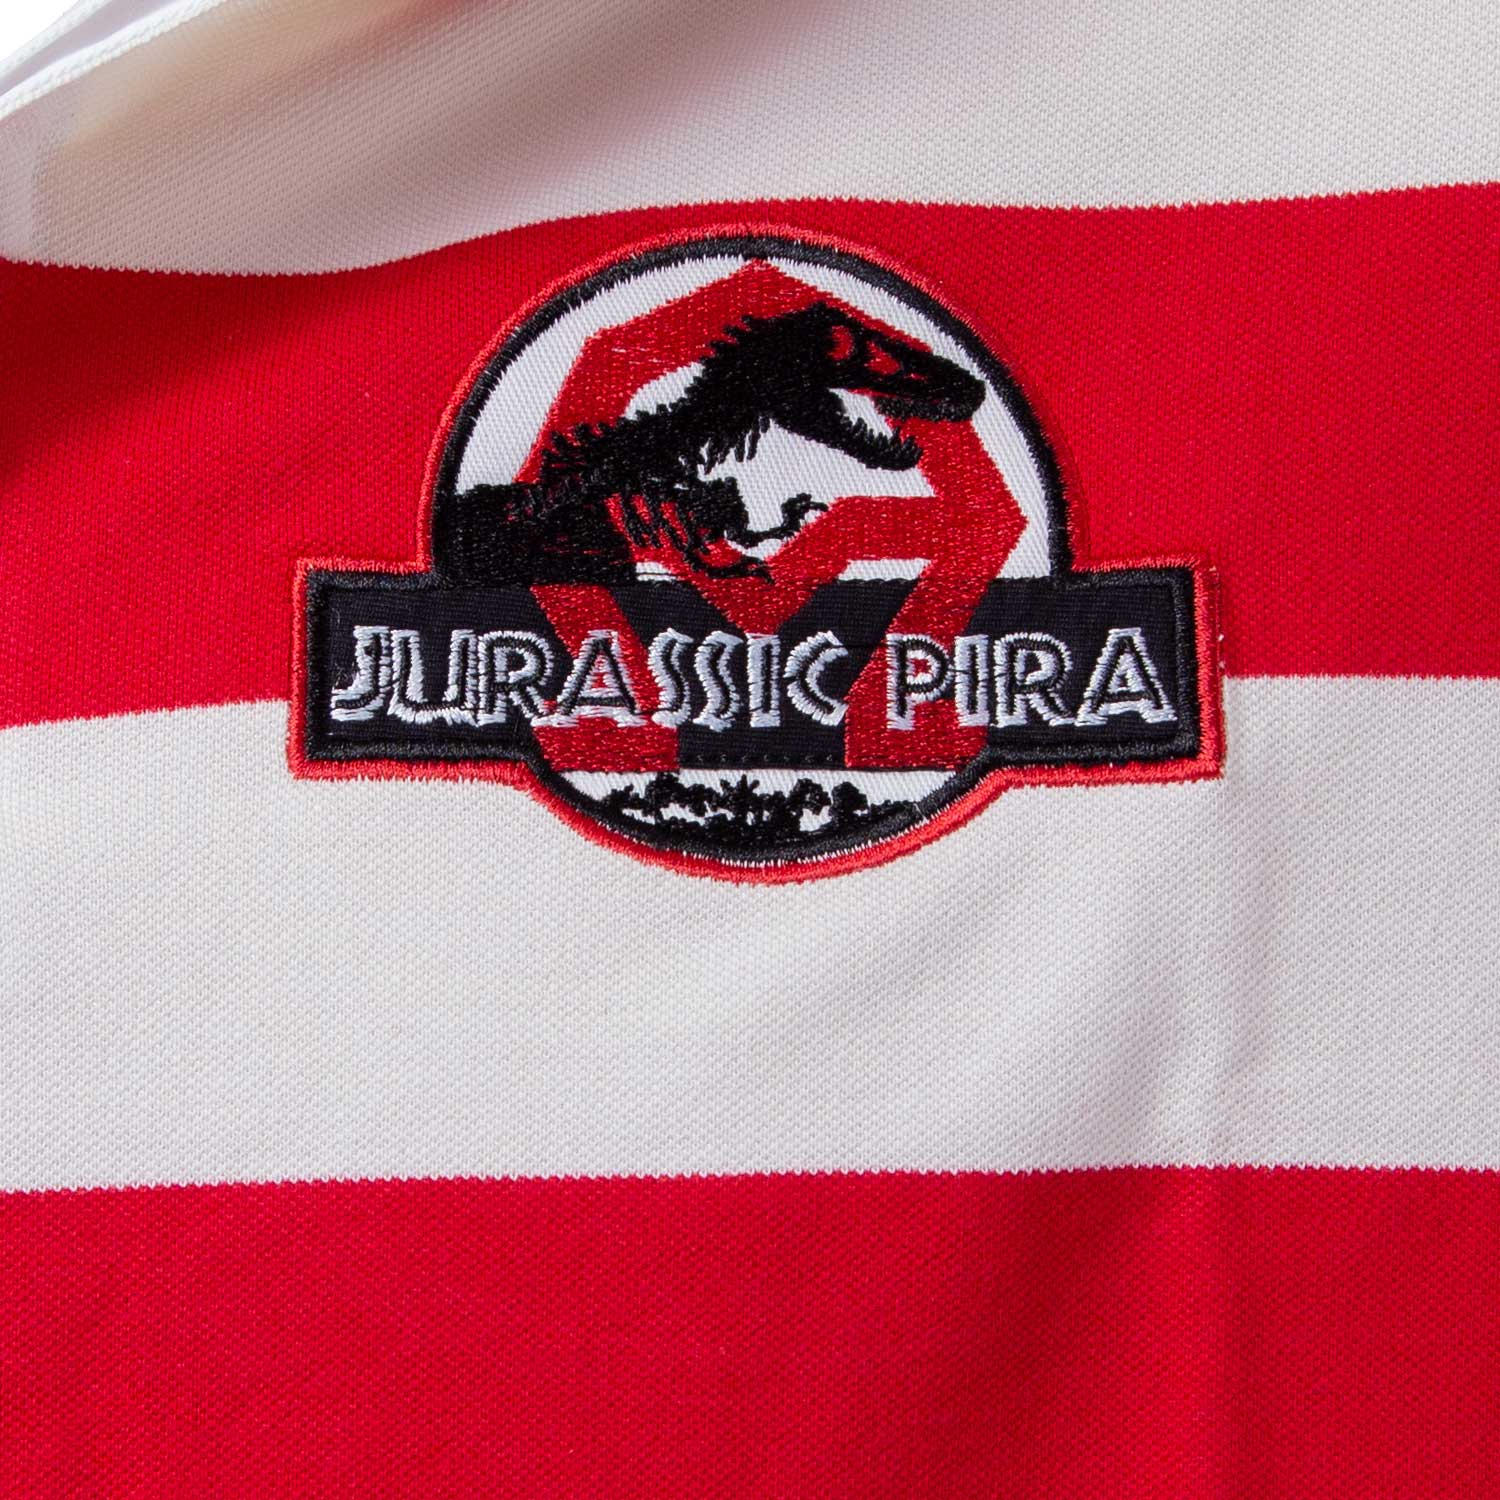 Camisa polo Jurassic pira rugby